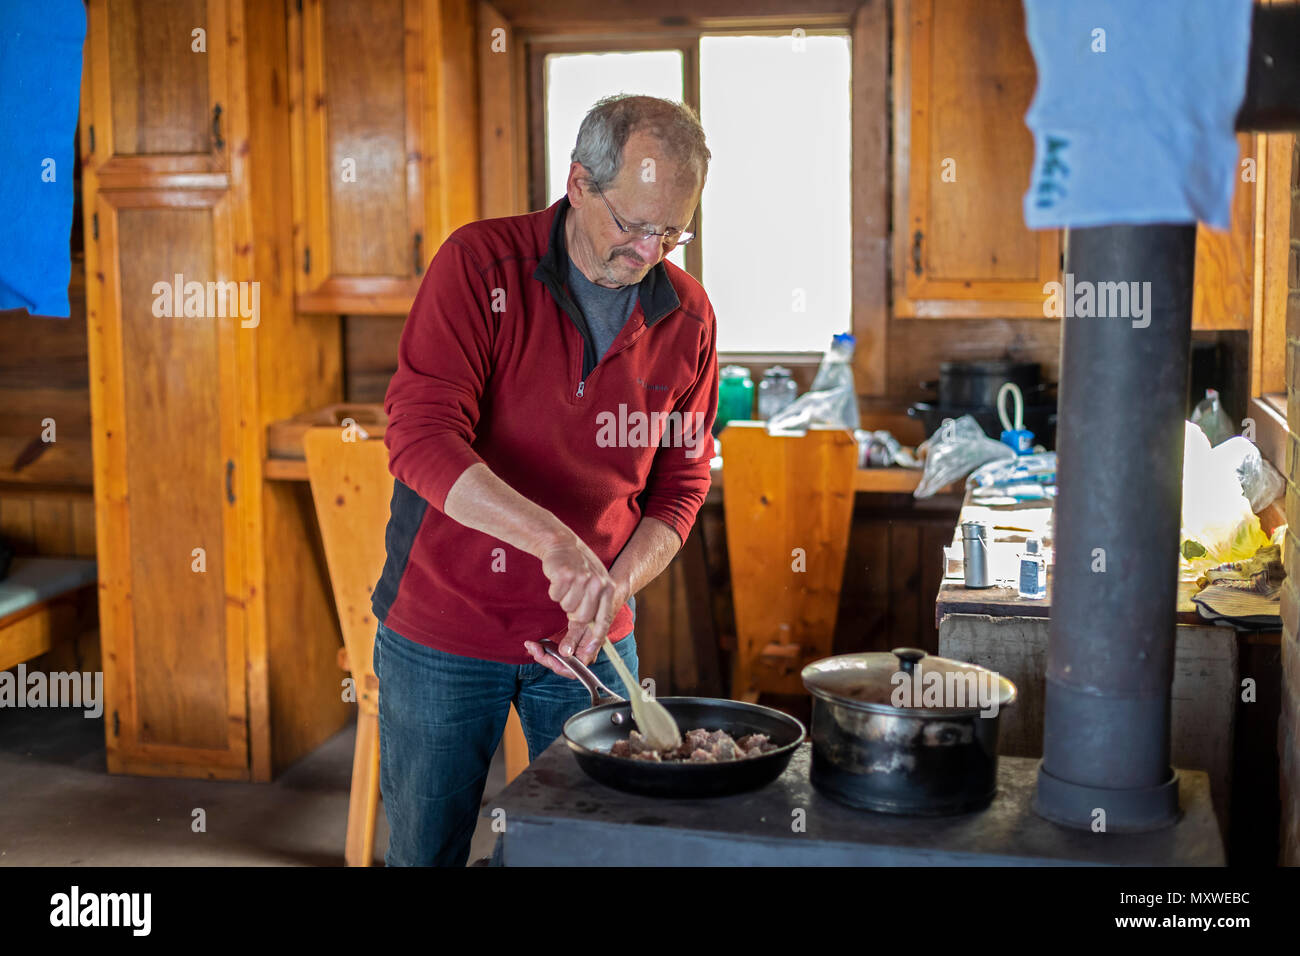 Ontonagon, Michigan - John West cooks dinner on a wood stove in a backpackers' cabin in Porcupine Mountains Wilderness State Park. The park maintains  Stock Photo